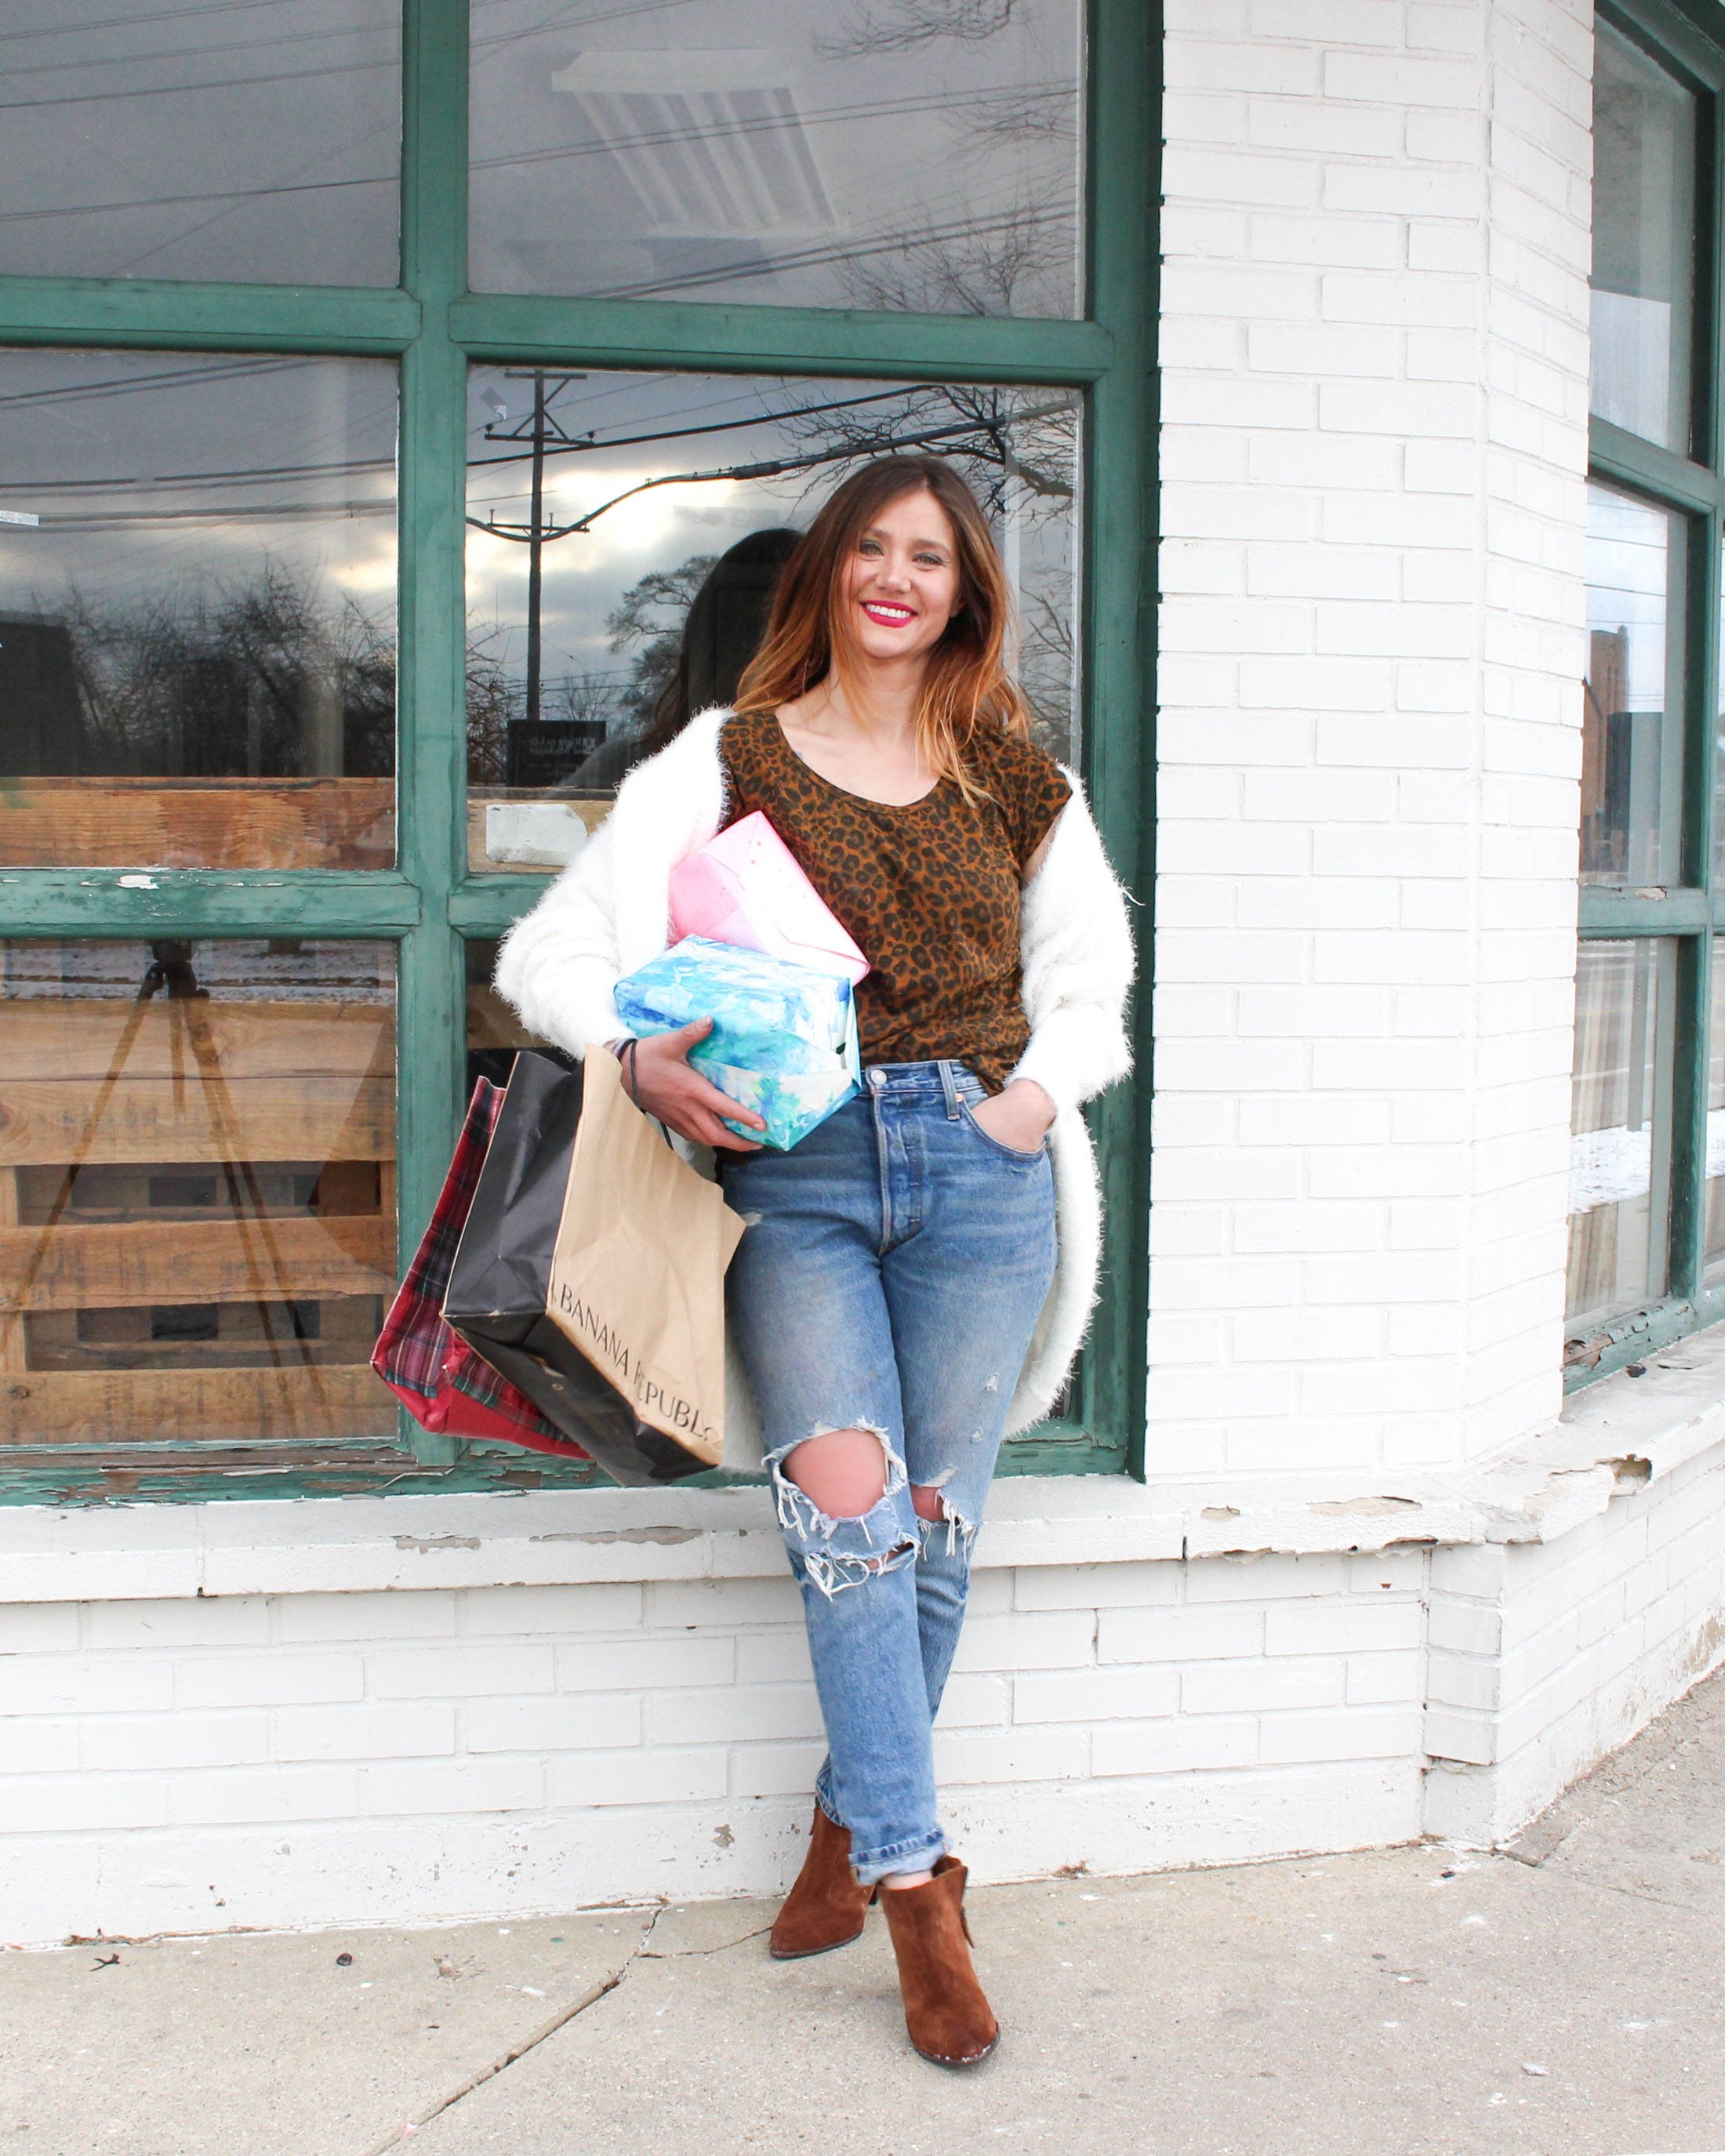 786924a574d3 What To Wear Last-Minute Holiday Shopping - The Mom Edit